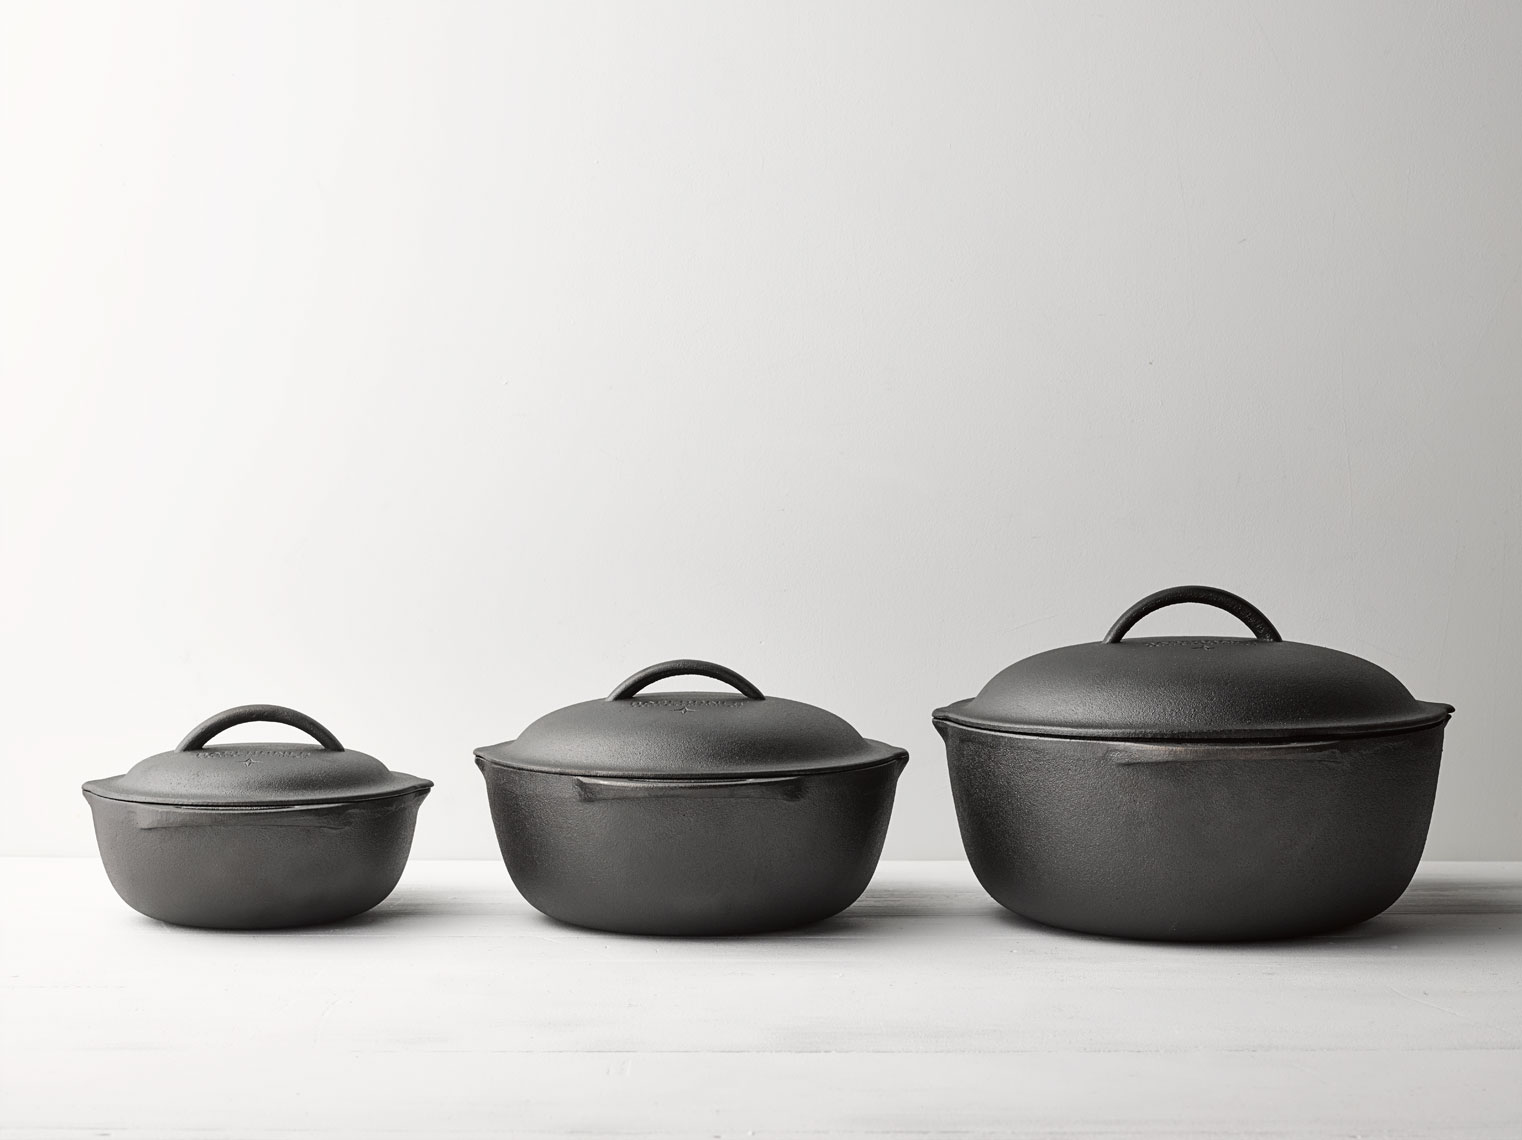 Cast iron pots in a straight line with soft shadows